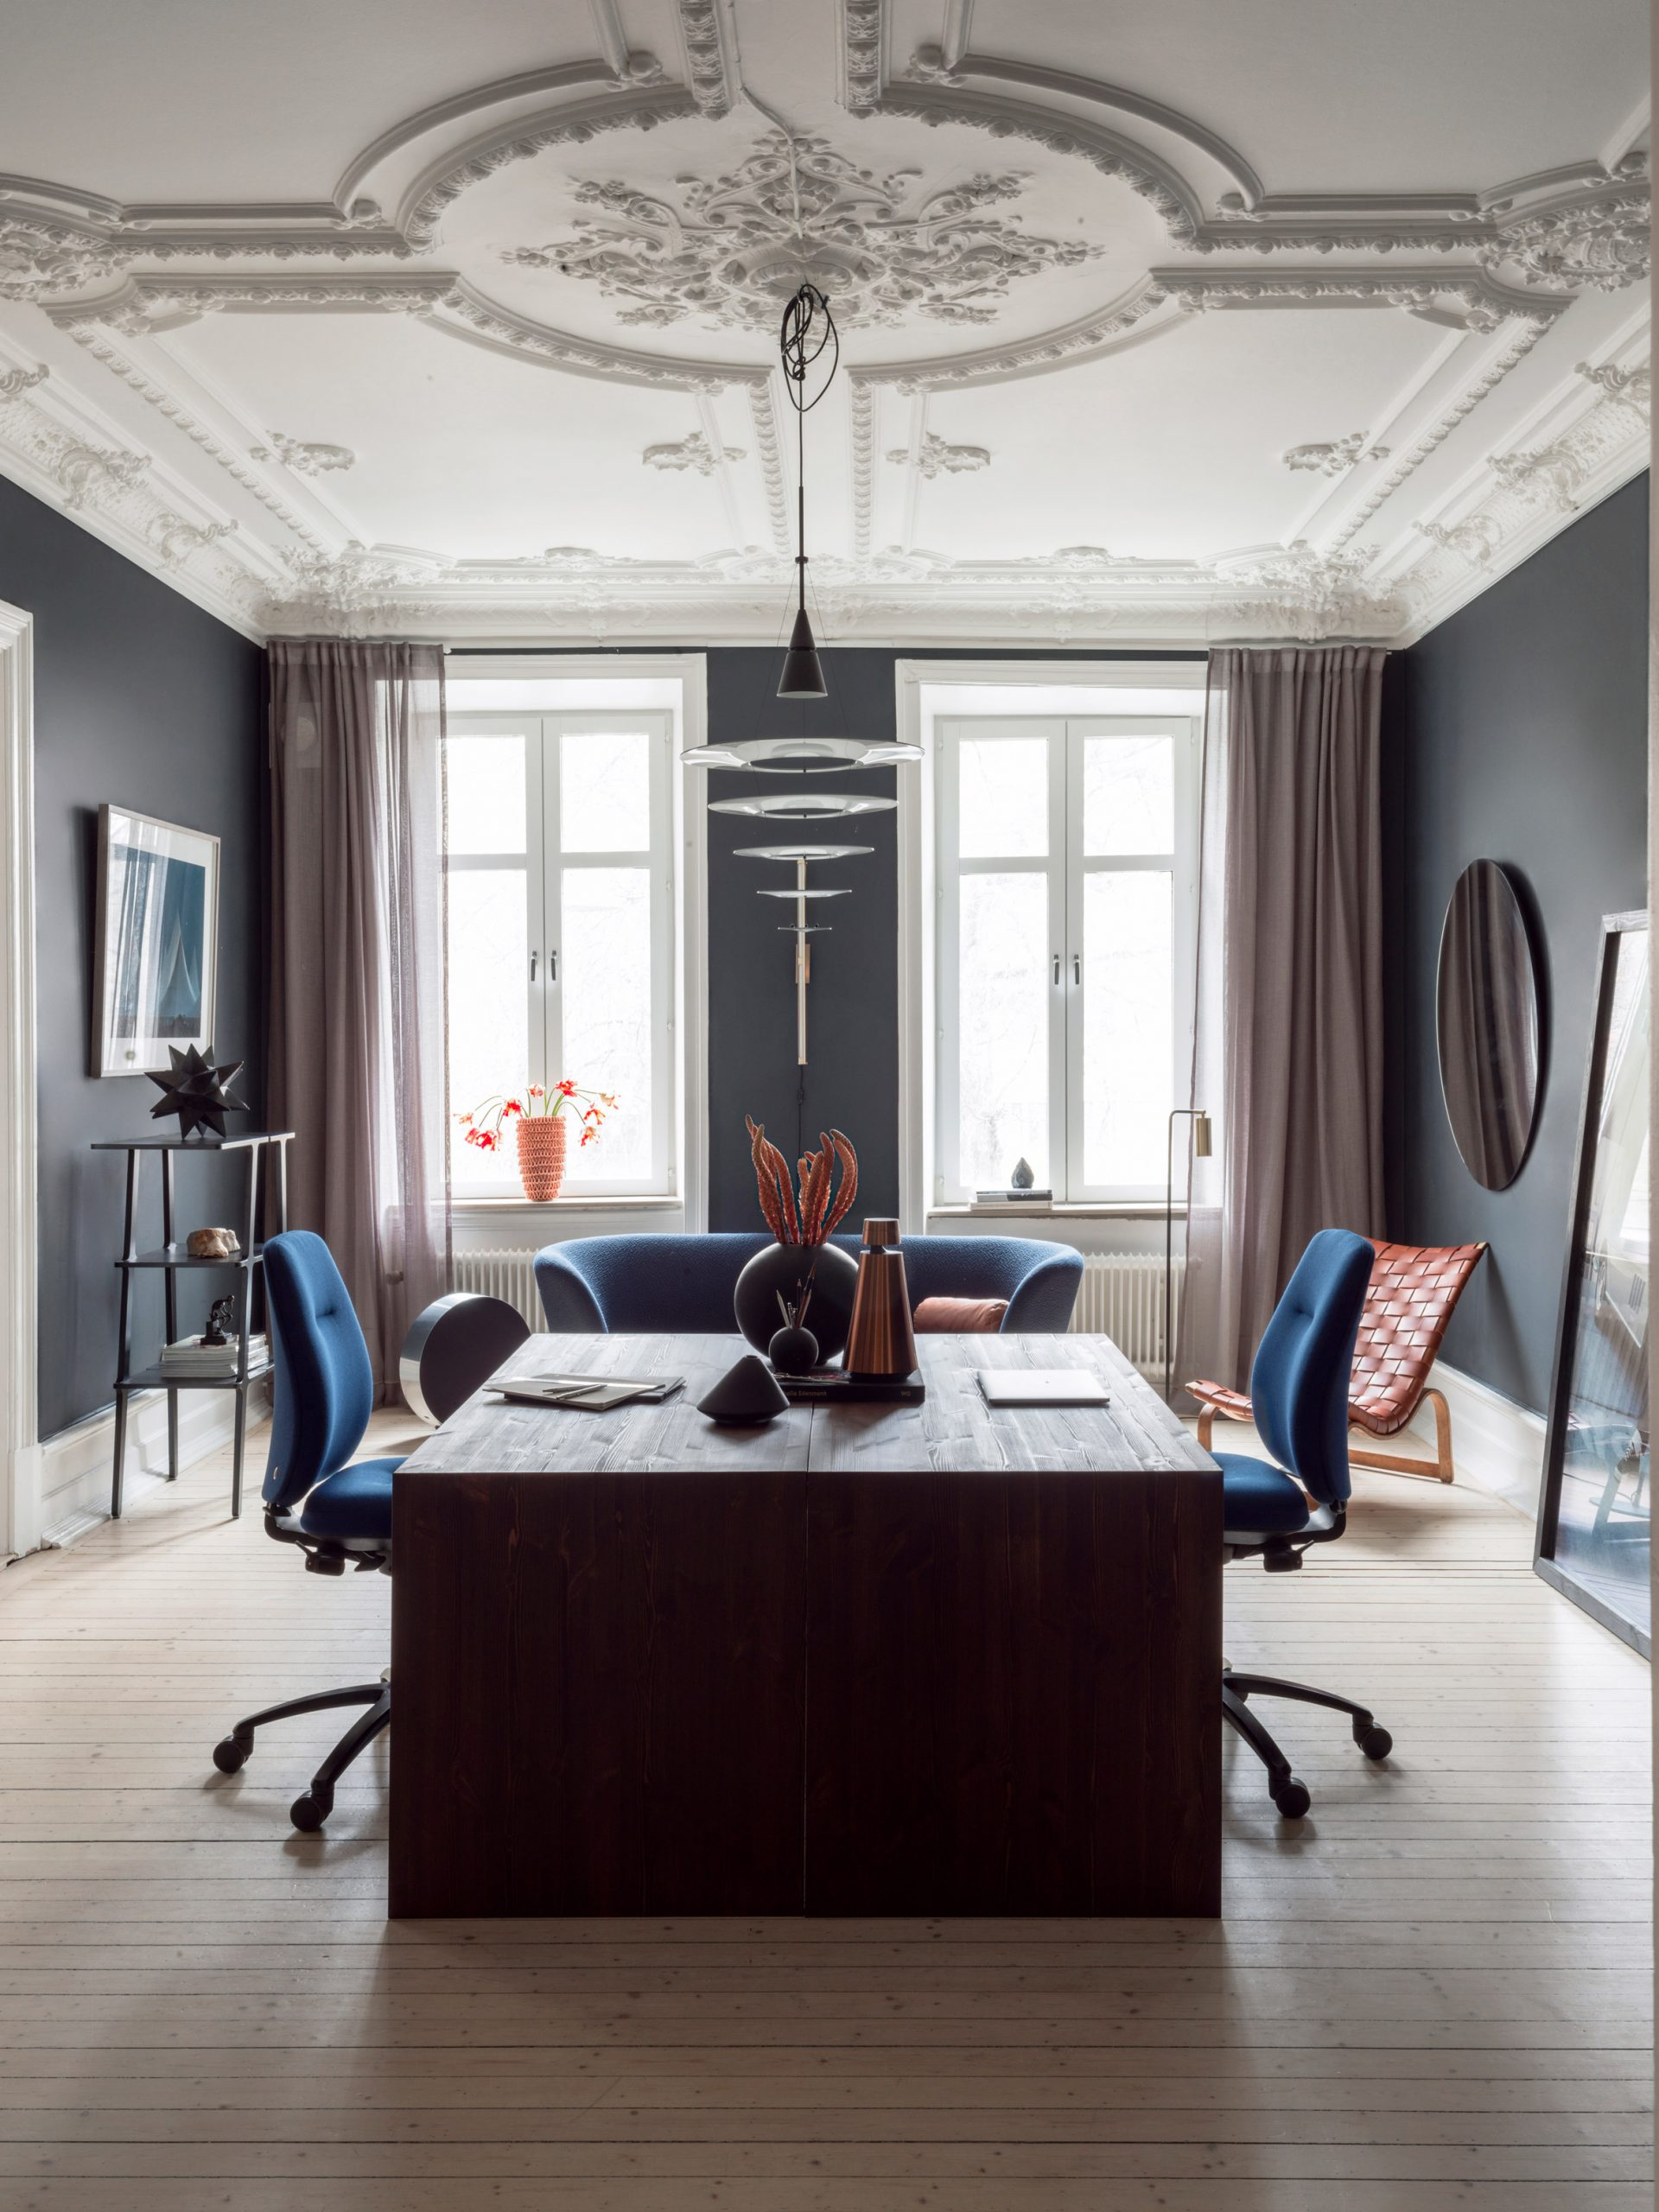 Interior featuring the RH New Logic chair by Flokk